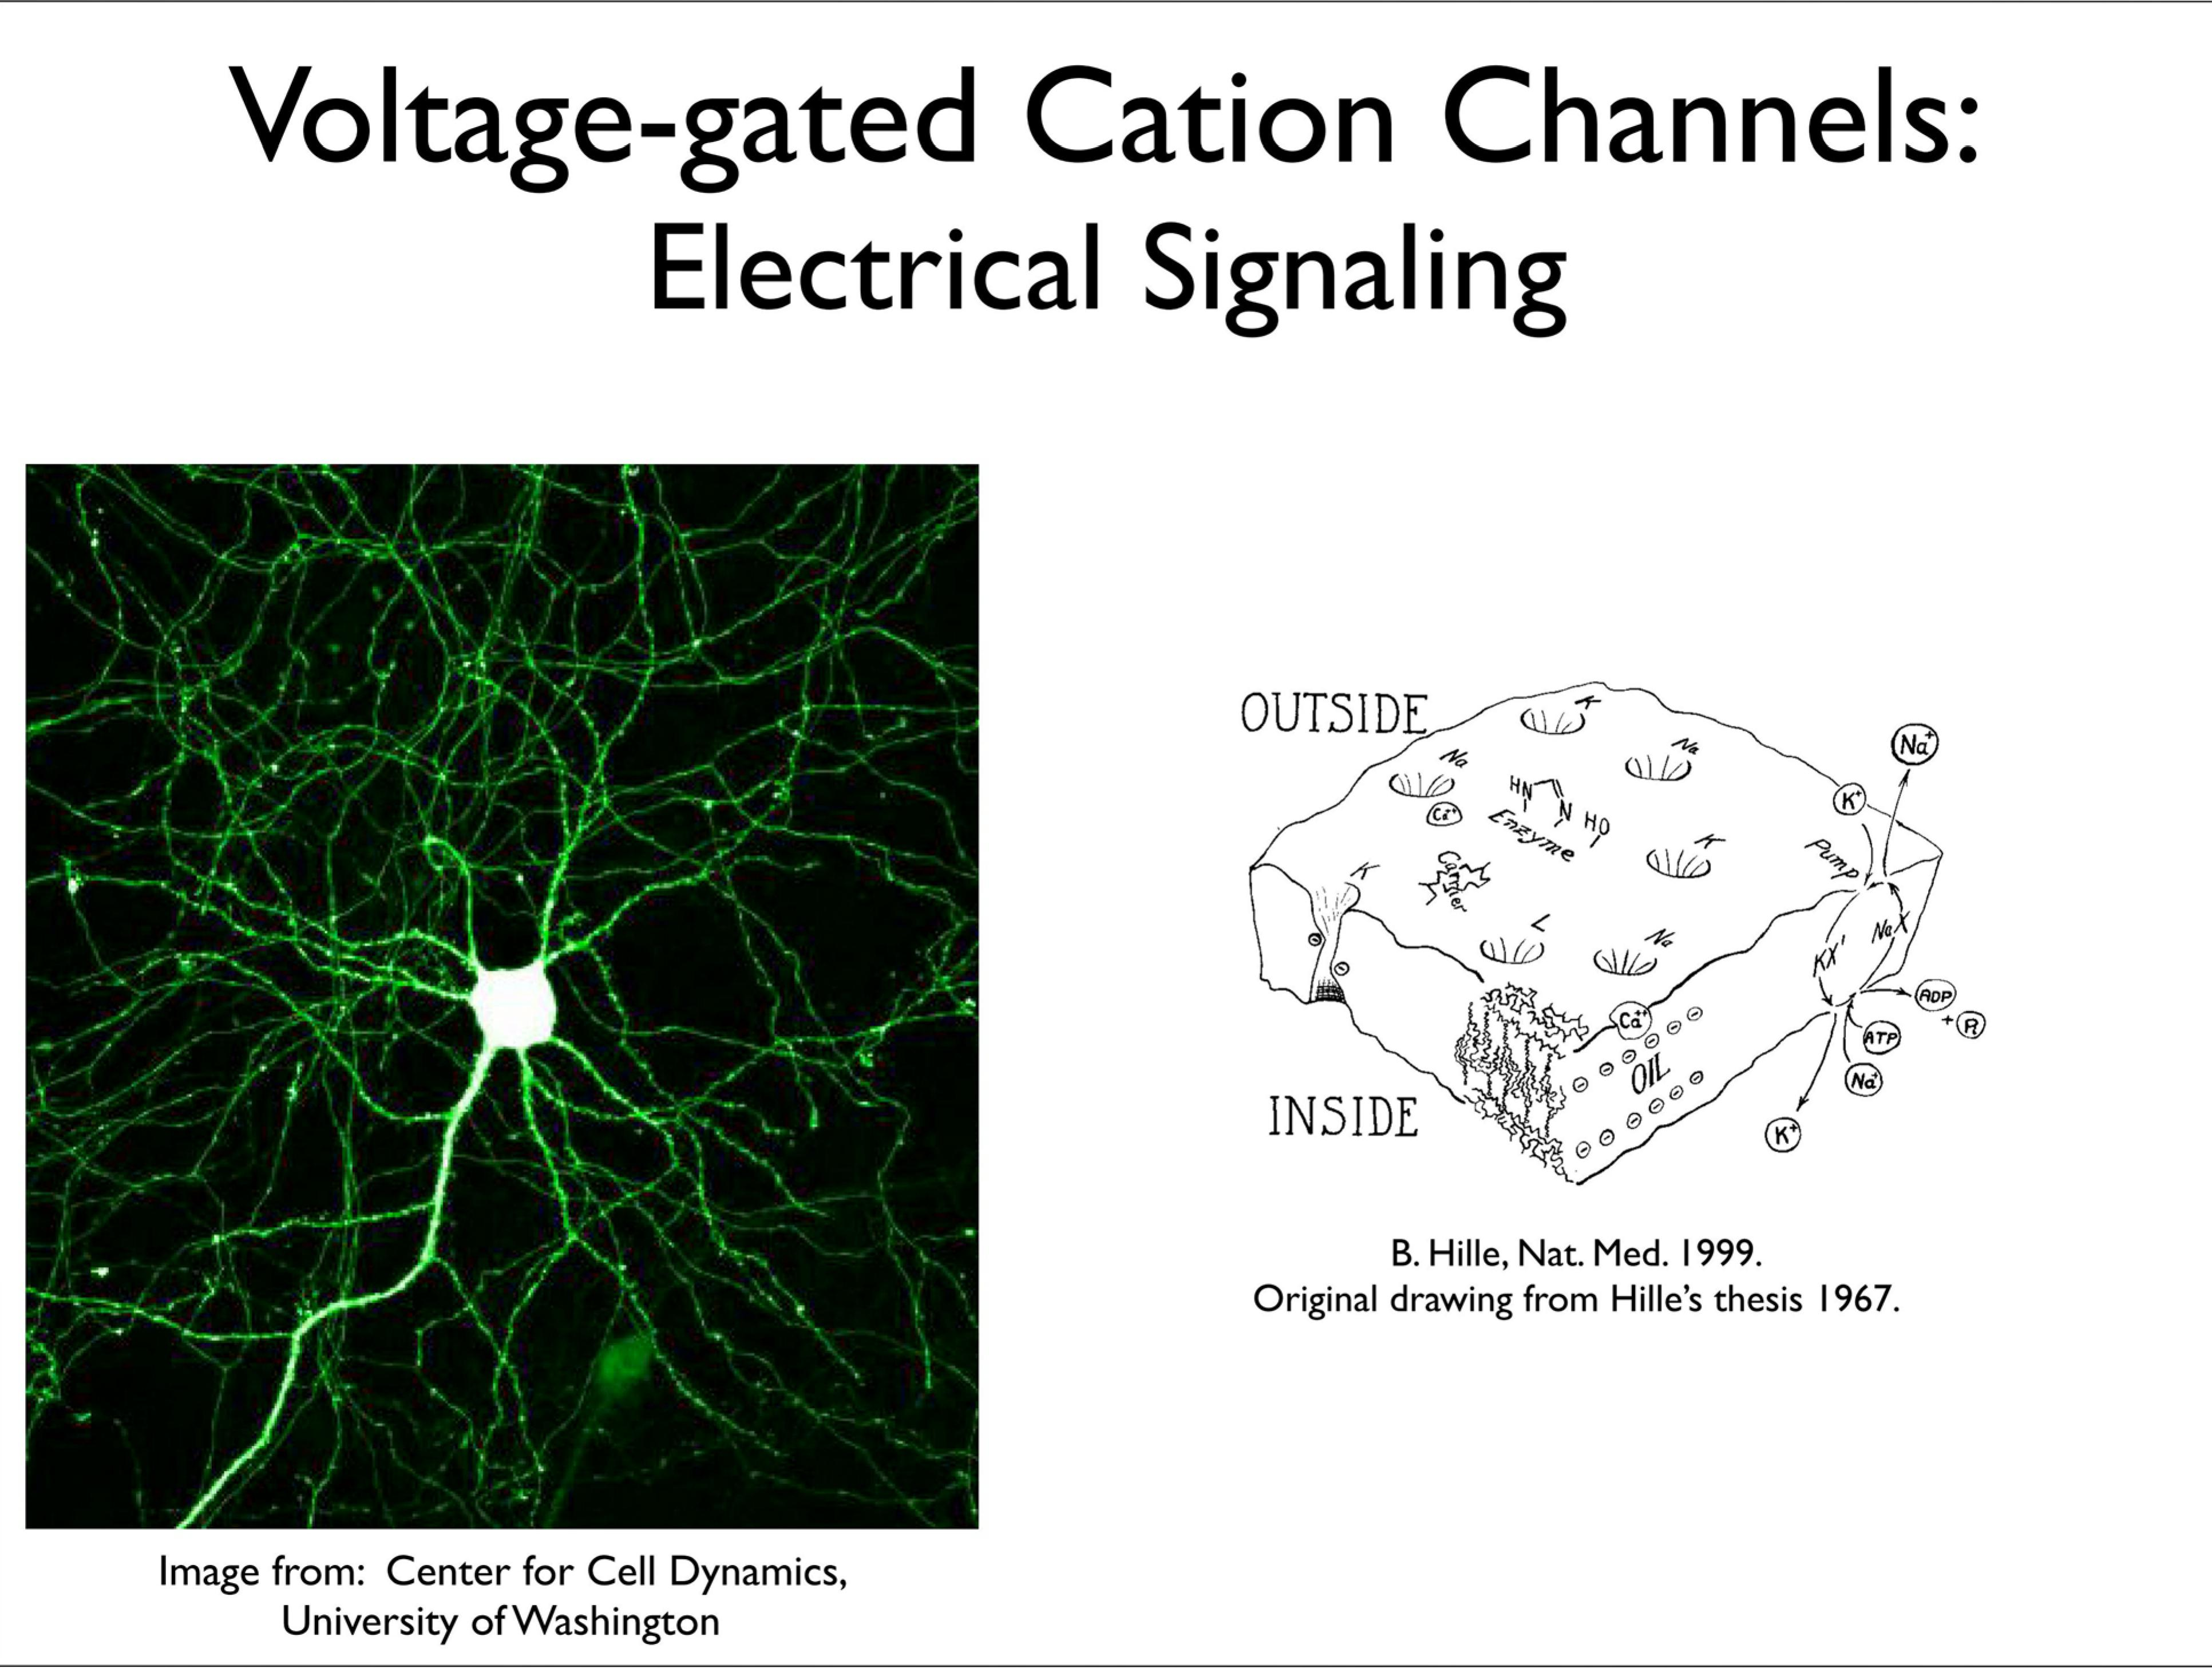 Slide 1: Voltage-gated Cation Channels: Electric Signaling